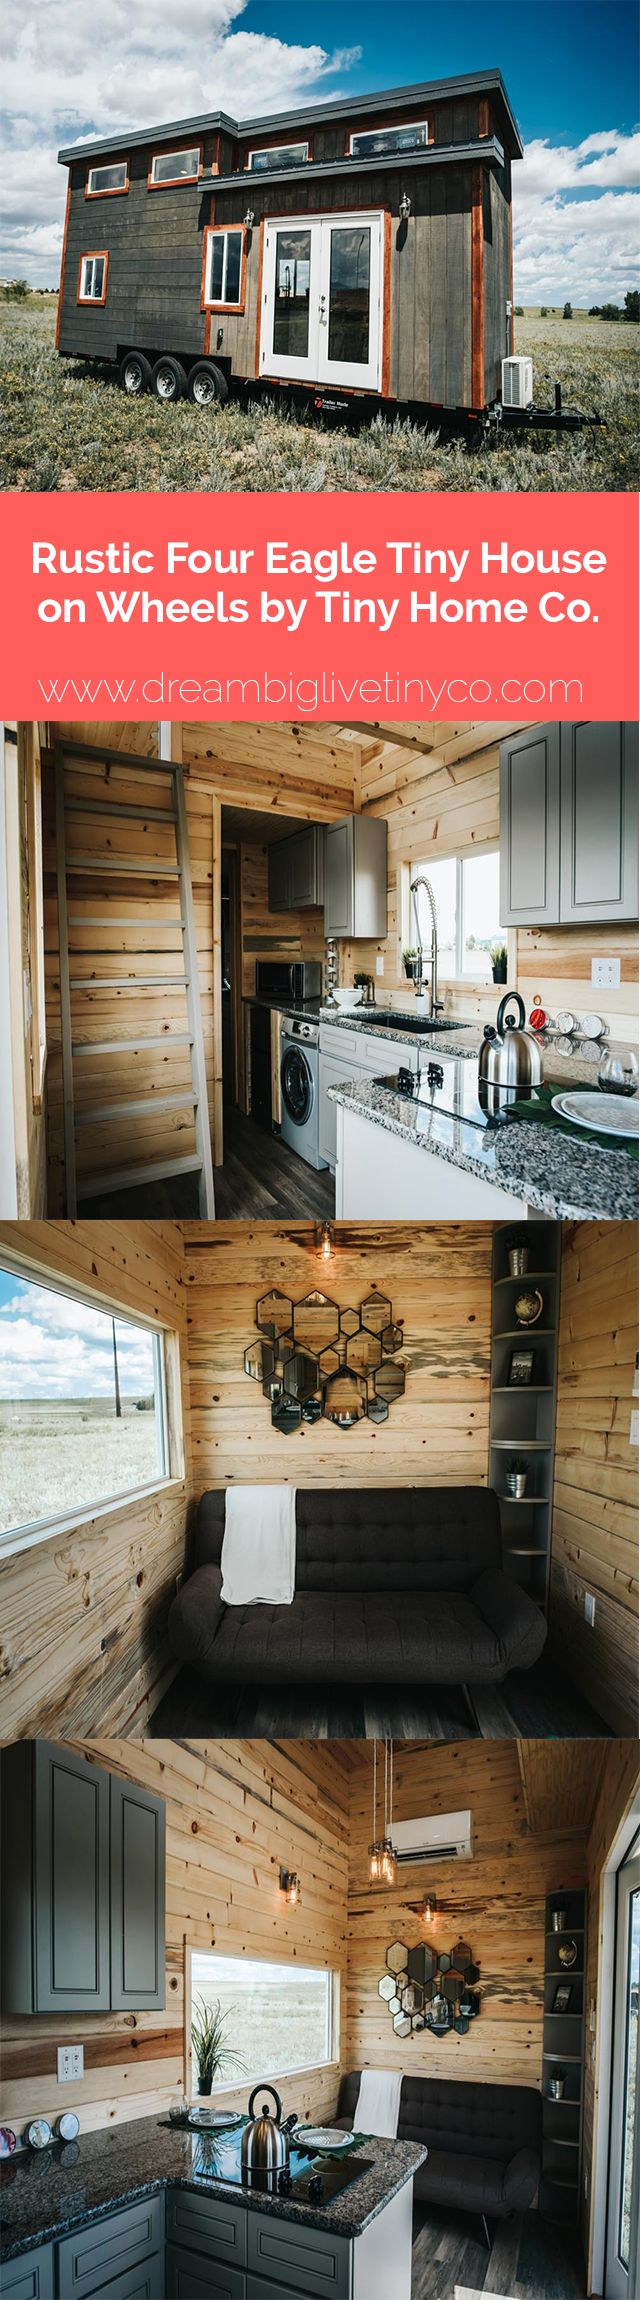 """Rustic """"Four Eagle"""" Tiny House on Wheels by Tiny Home Co."""